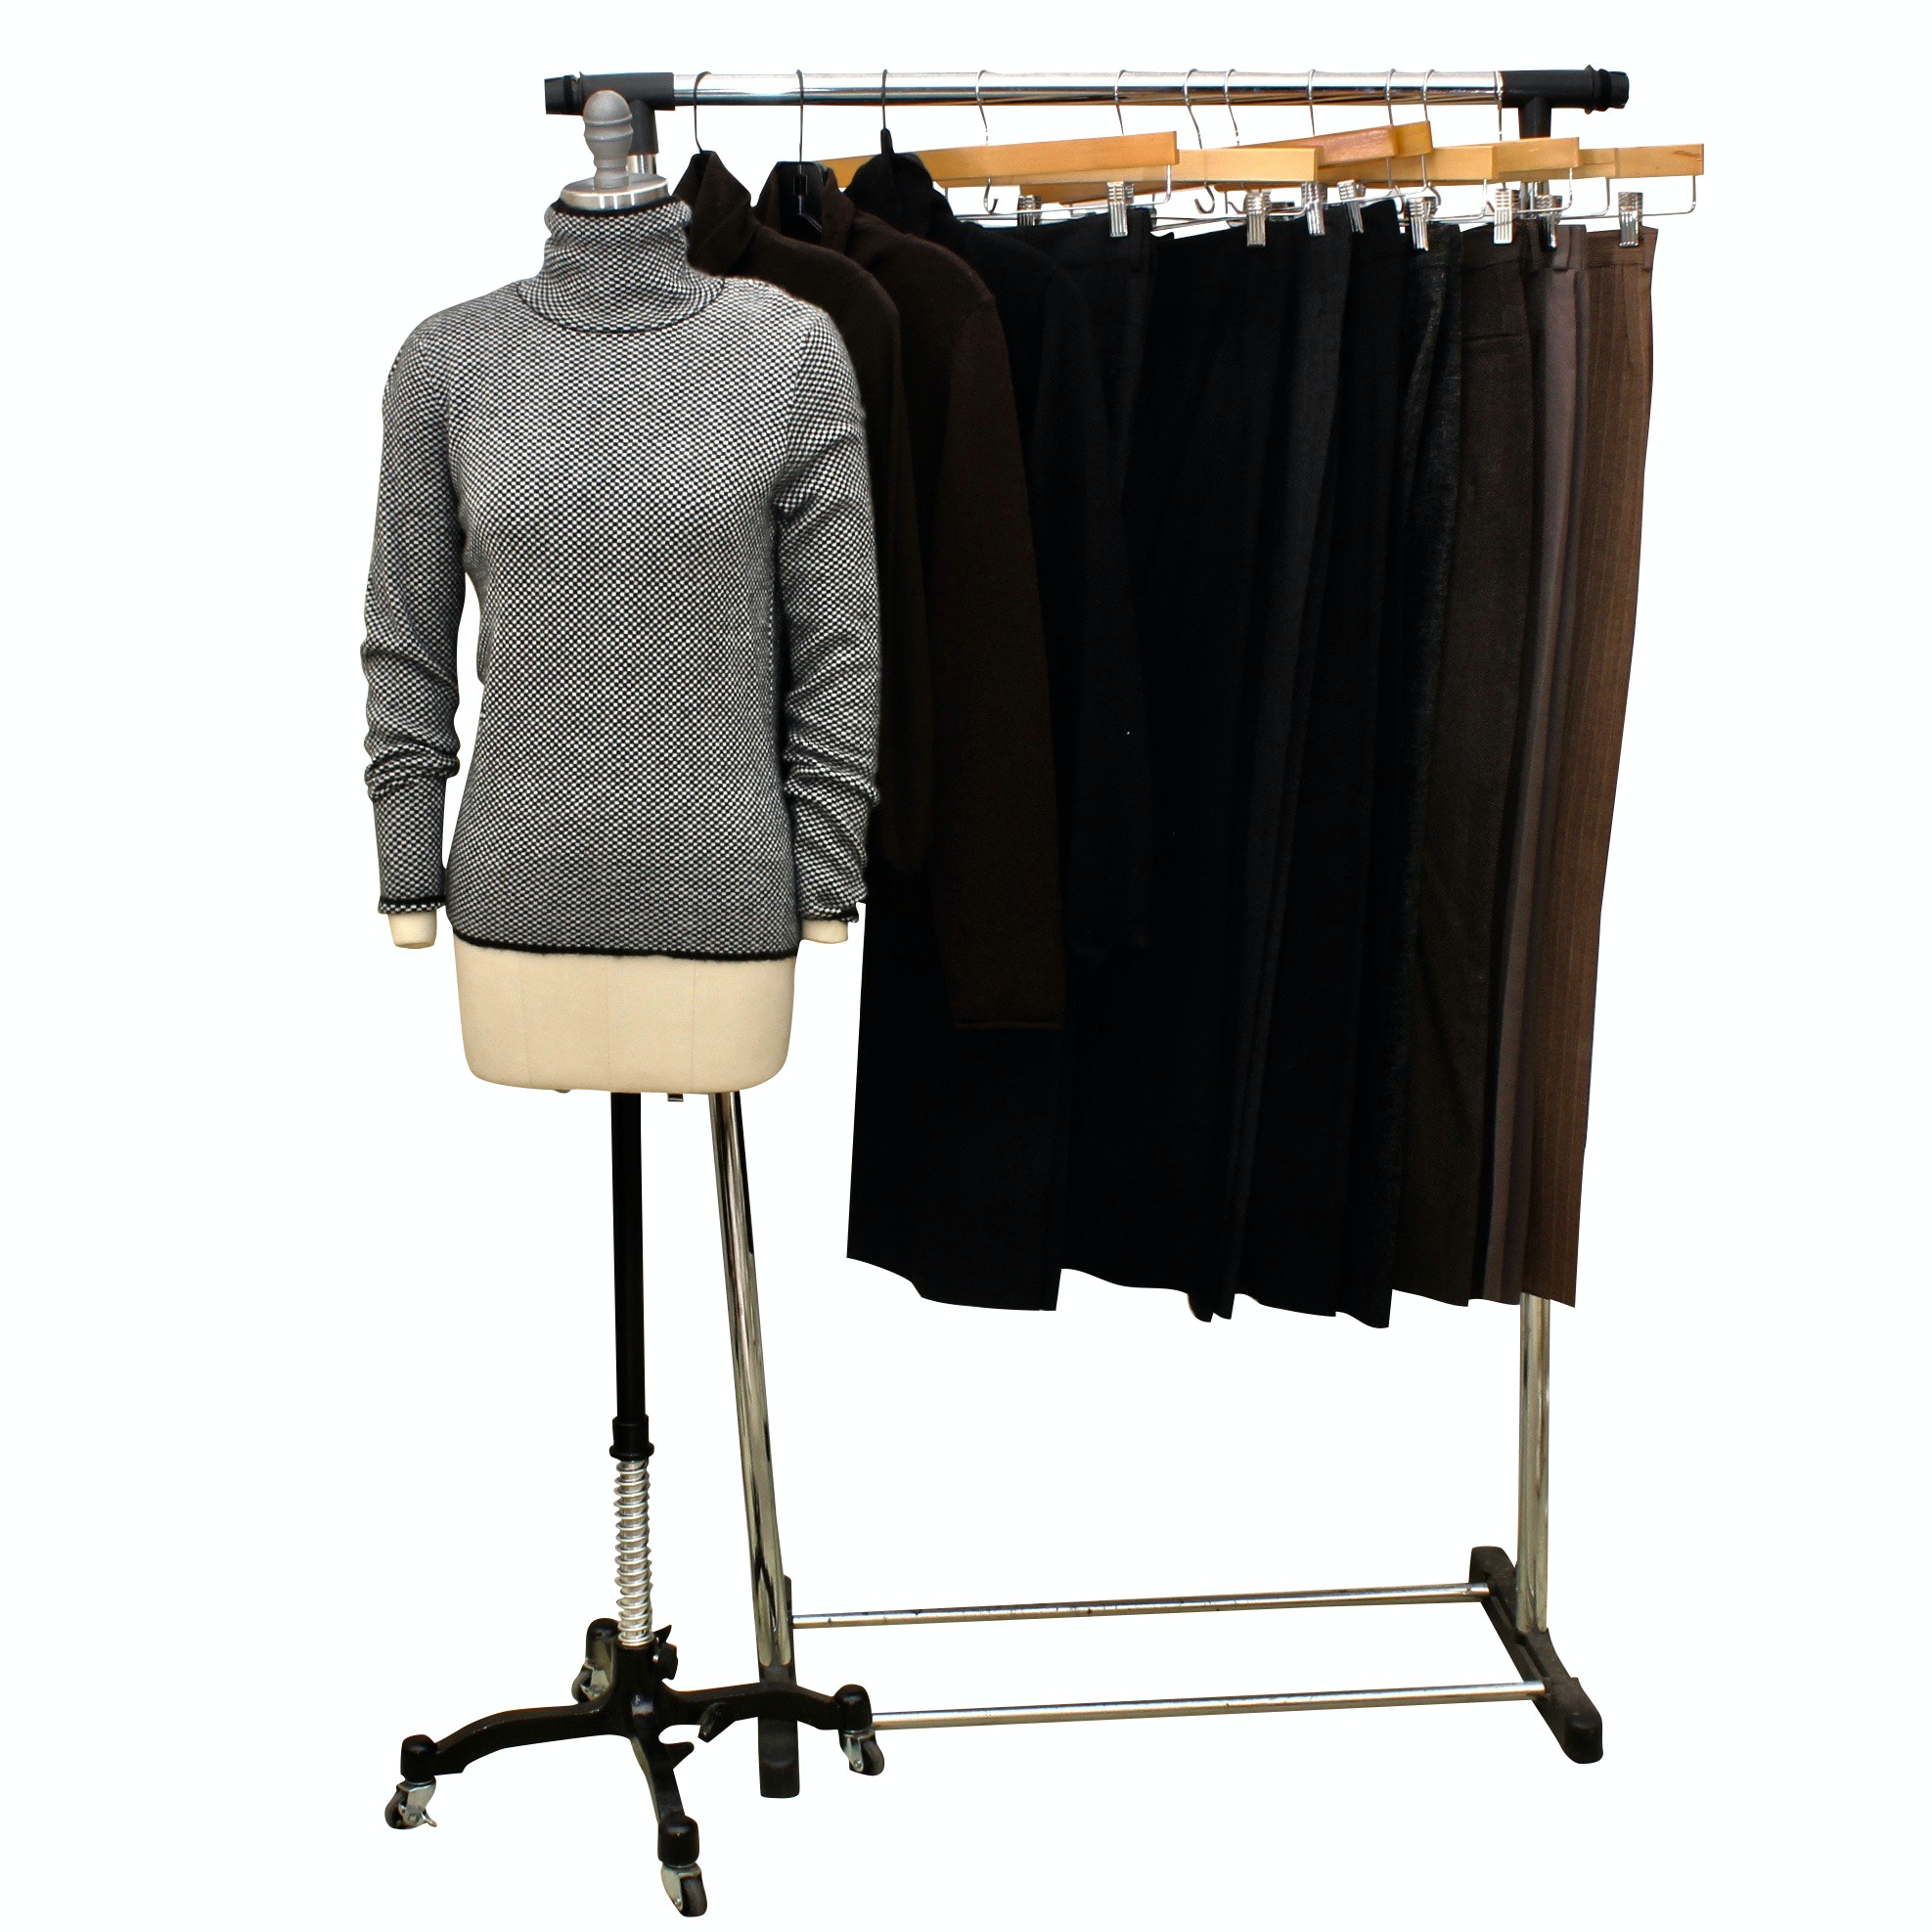 Chanel, Giorgio Armani, Les Copains, Ralph Lauren, and More Sweaters and Pants